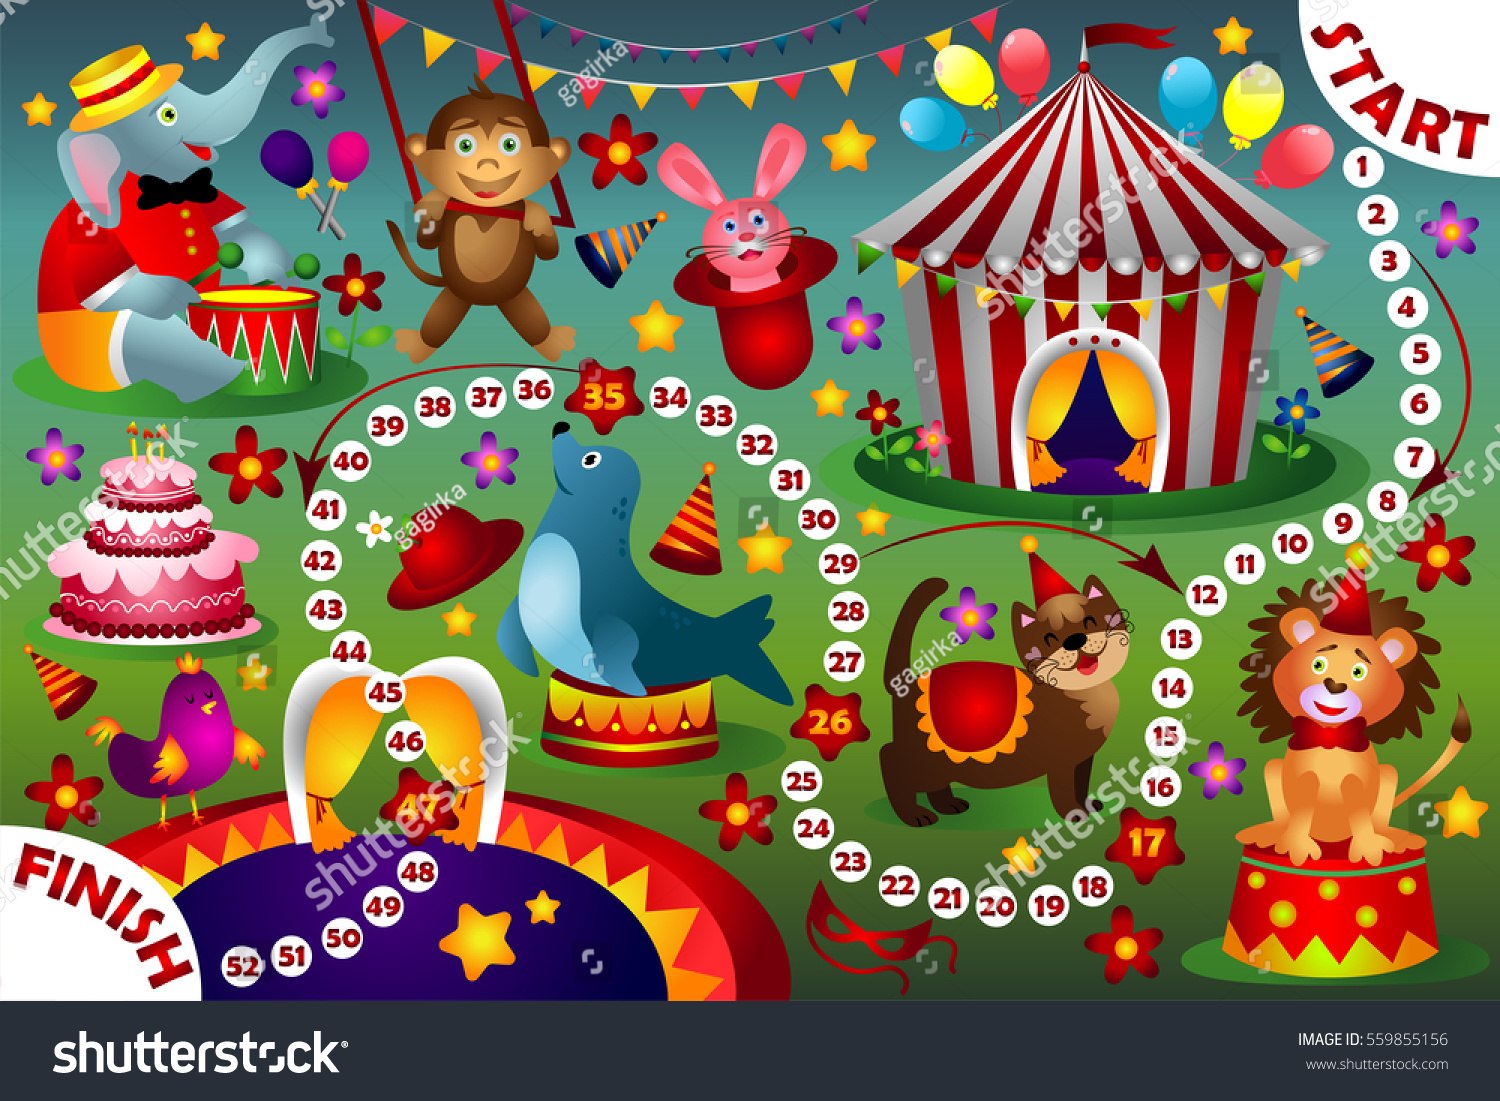 Uncategorized Circus Images For Kids board game kids cartoon circus stock vector 559855156 shutterstock for circus